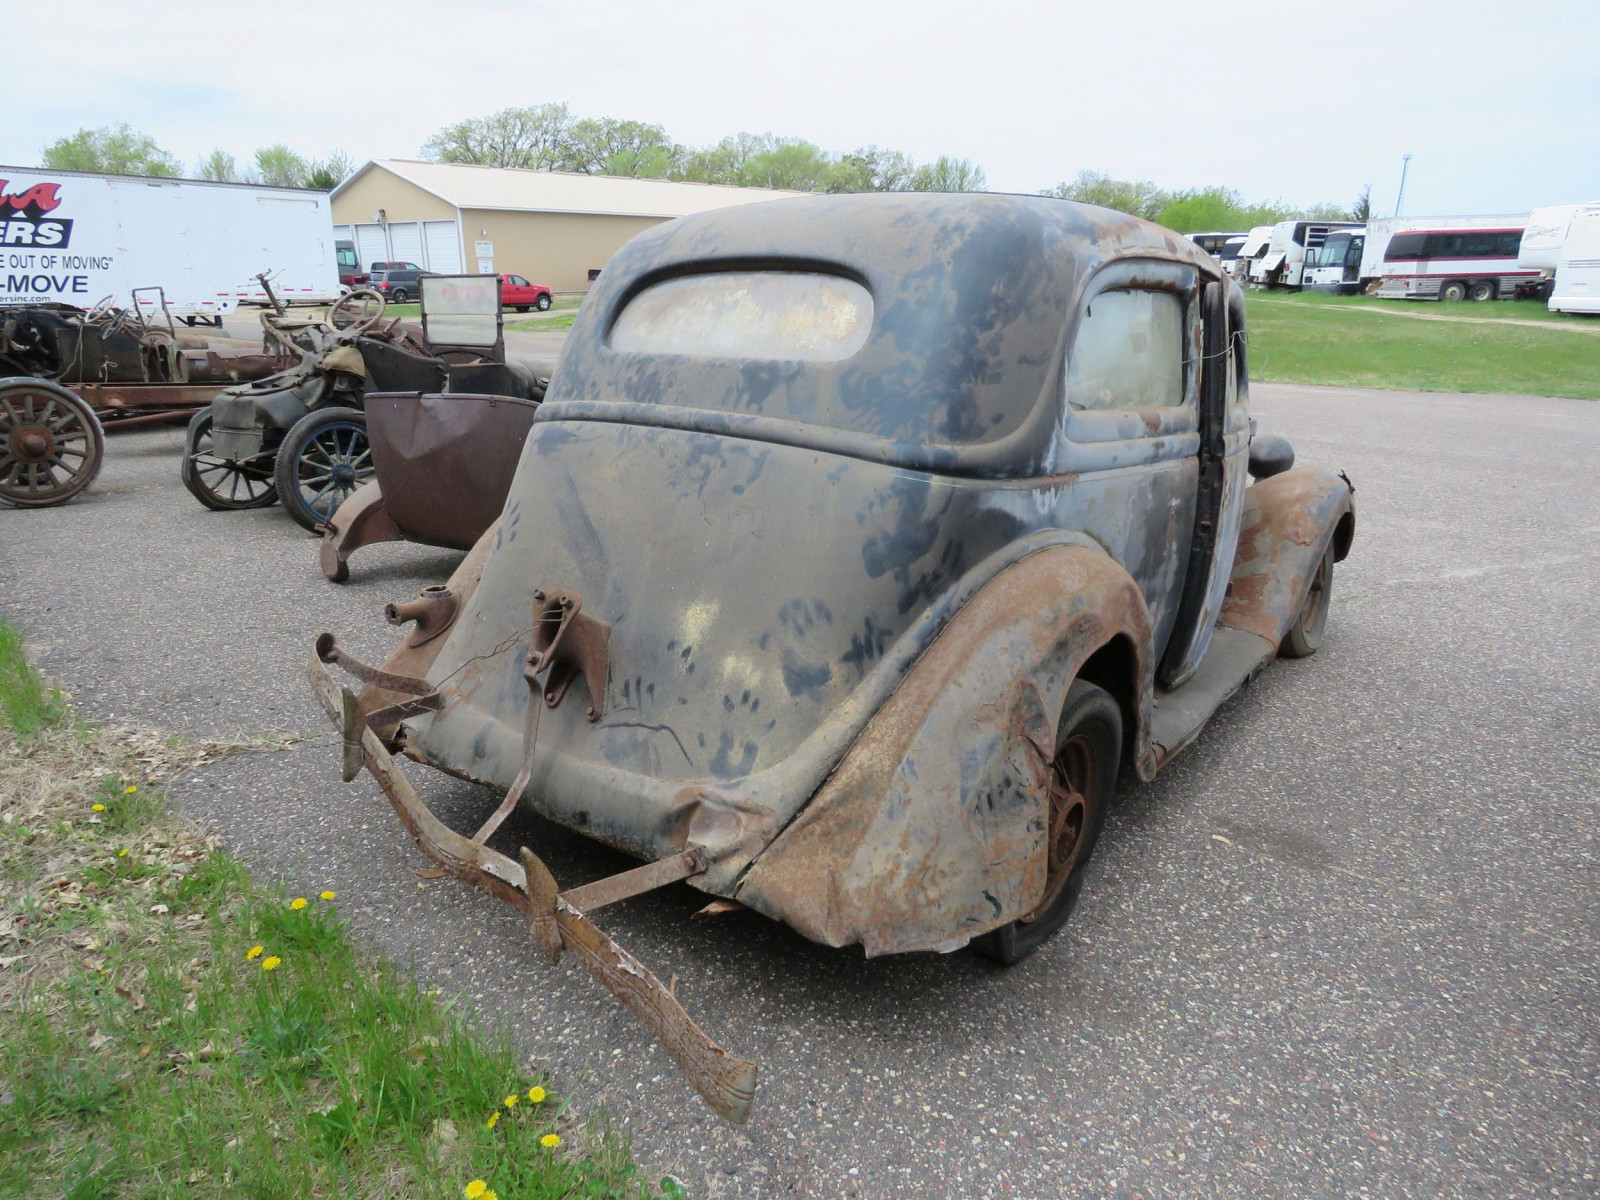 1935 Ford Tudor Sedan for Project or Parts - Image 6